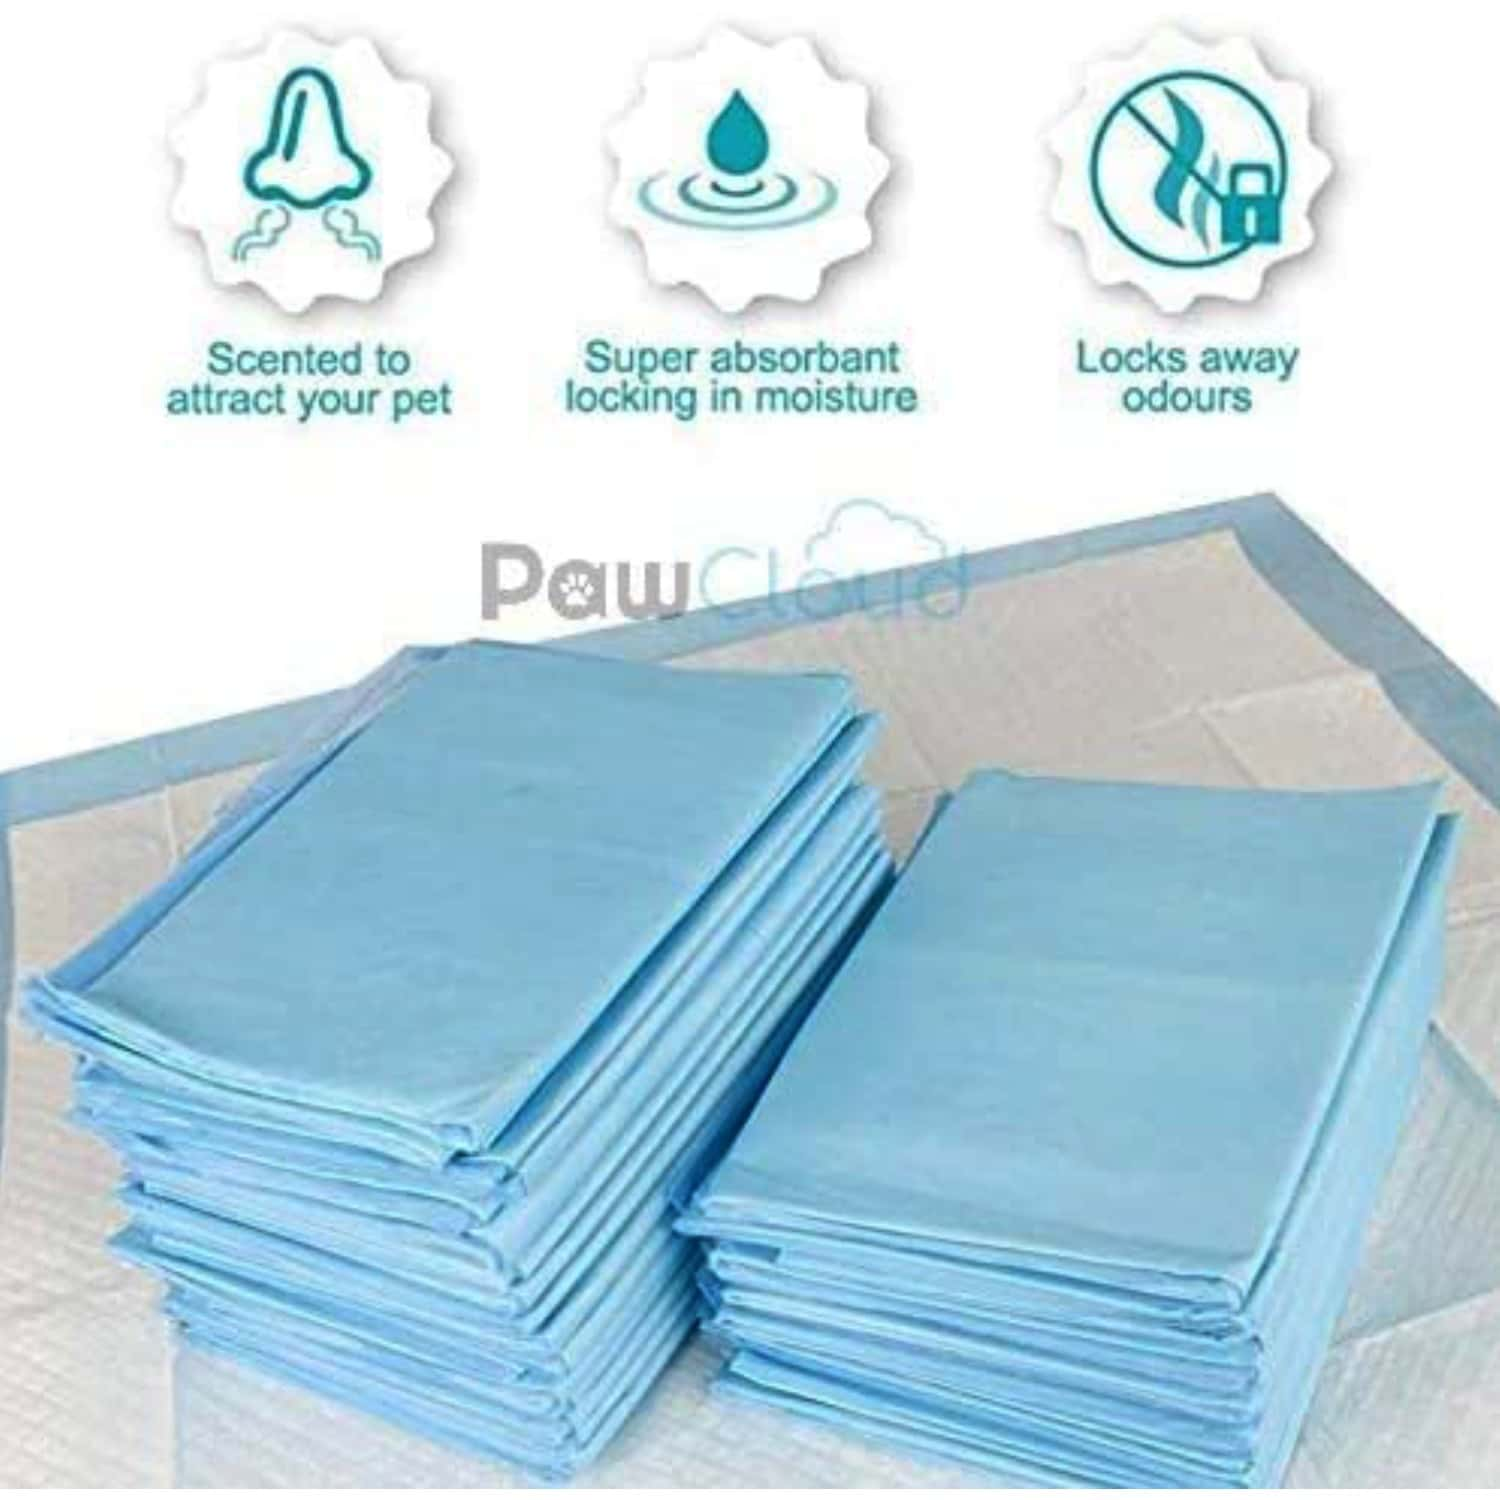 Pawcloud Pet Toilet Training Pad (17.5 X 23.3 Inches) -10 Pads